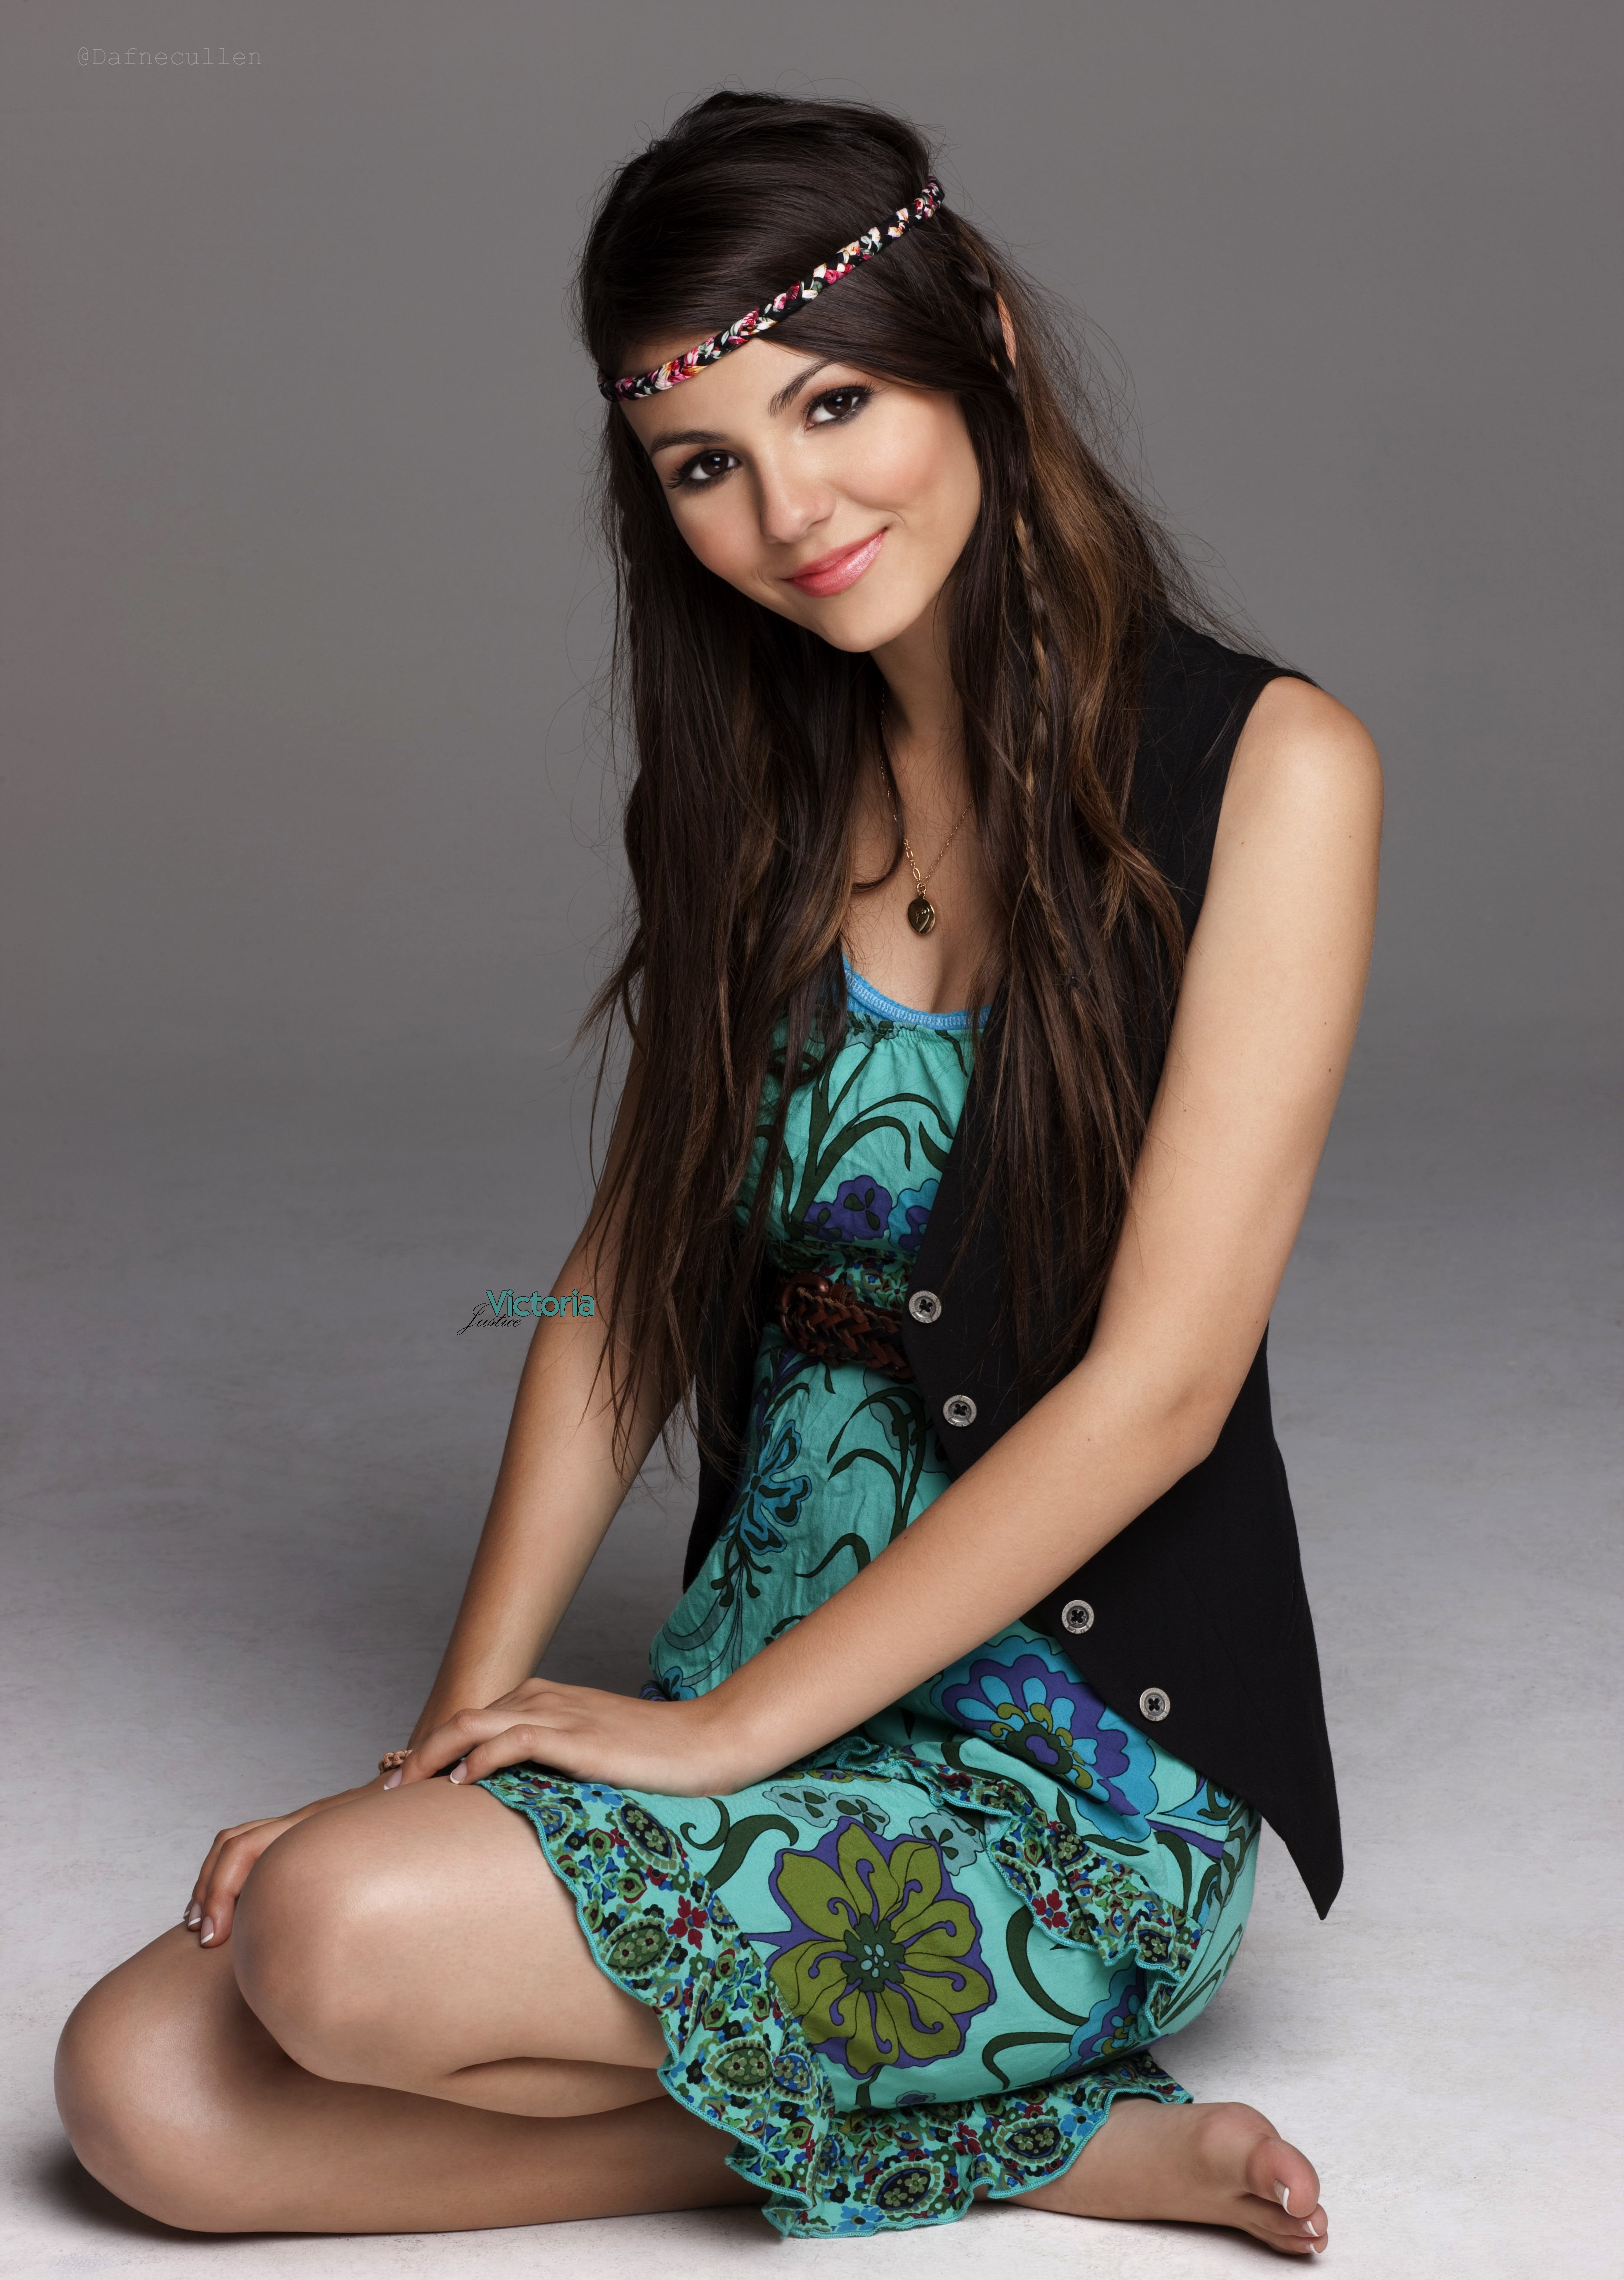 woman victoria justice brunettes singers